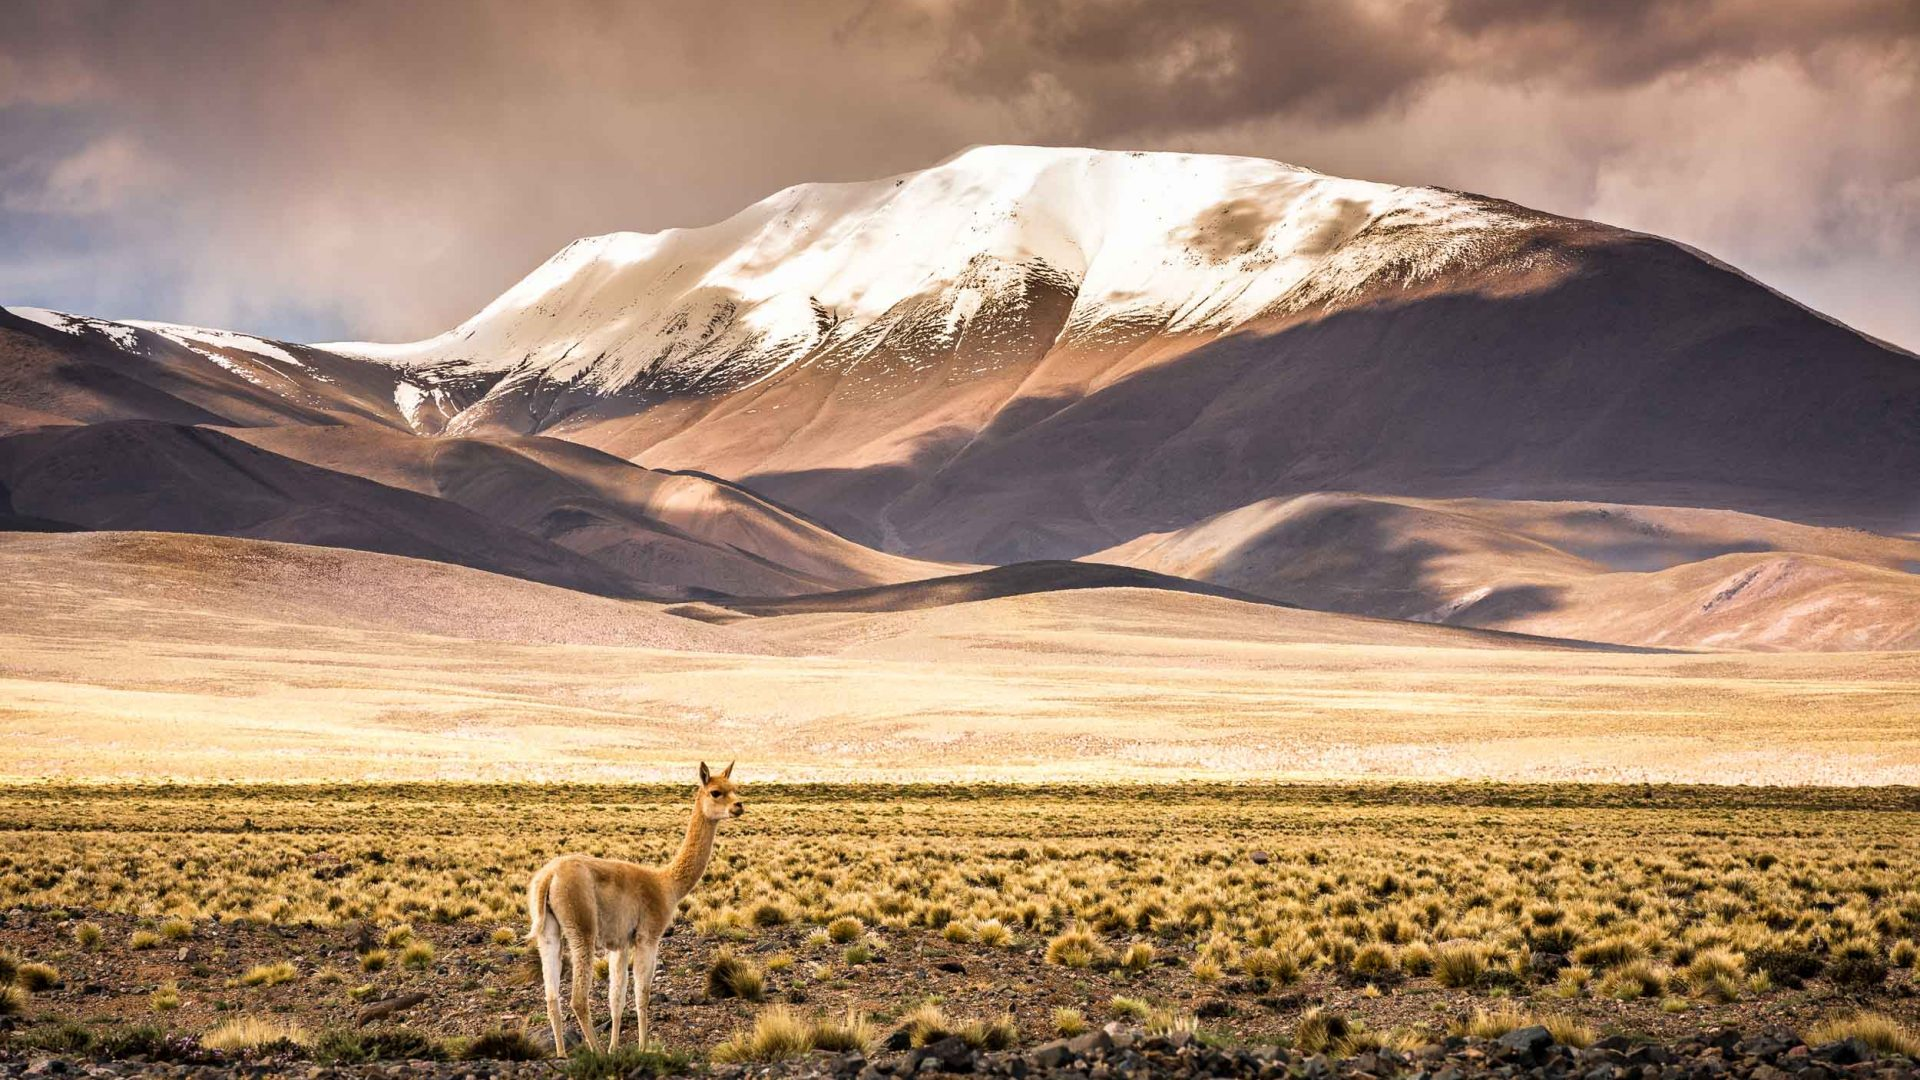 A llama stands solo against the backdrop of a snowy mountain in Salta, Argentina.